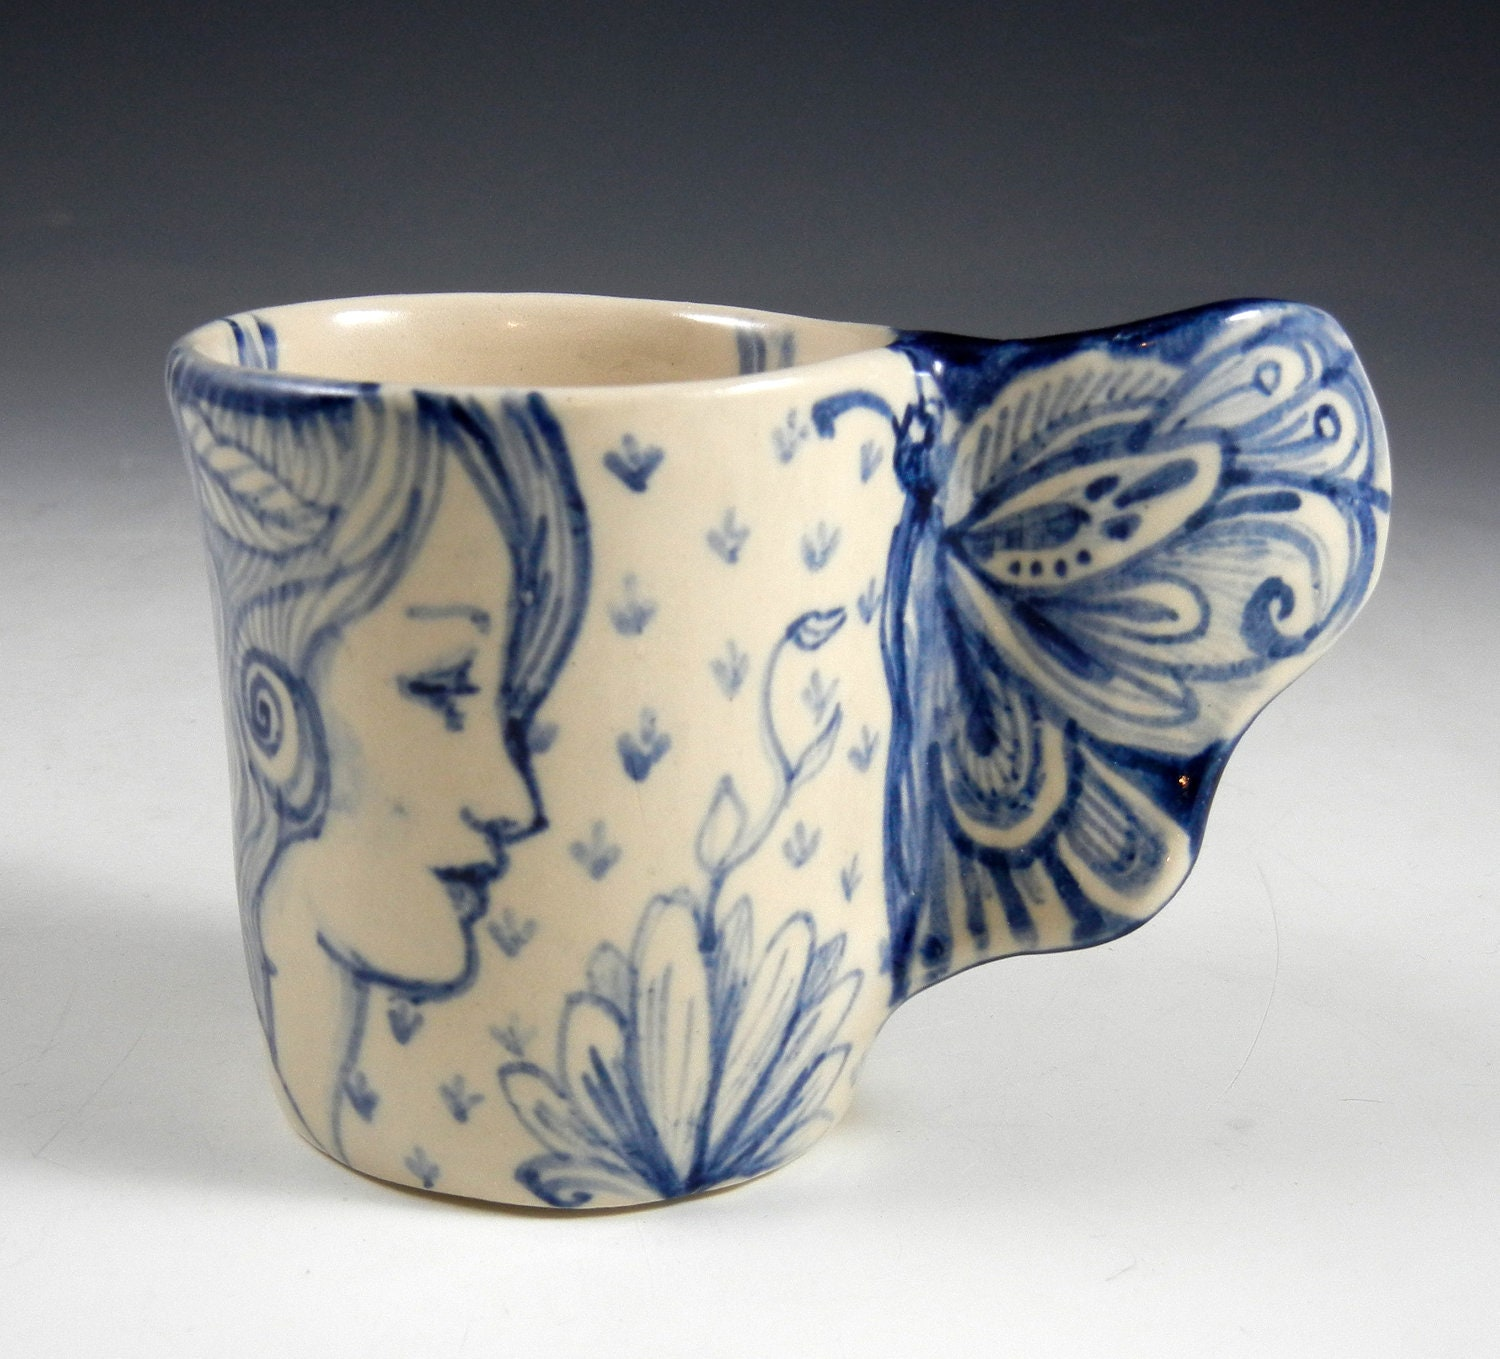 Blue and white porcelain cup with butterfly wing and three faces